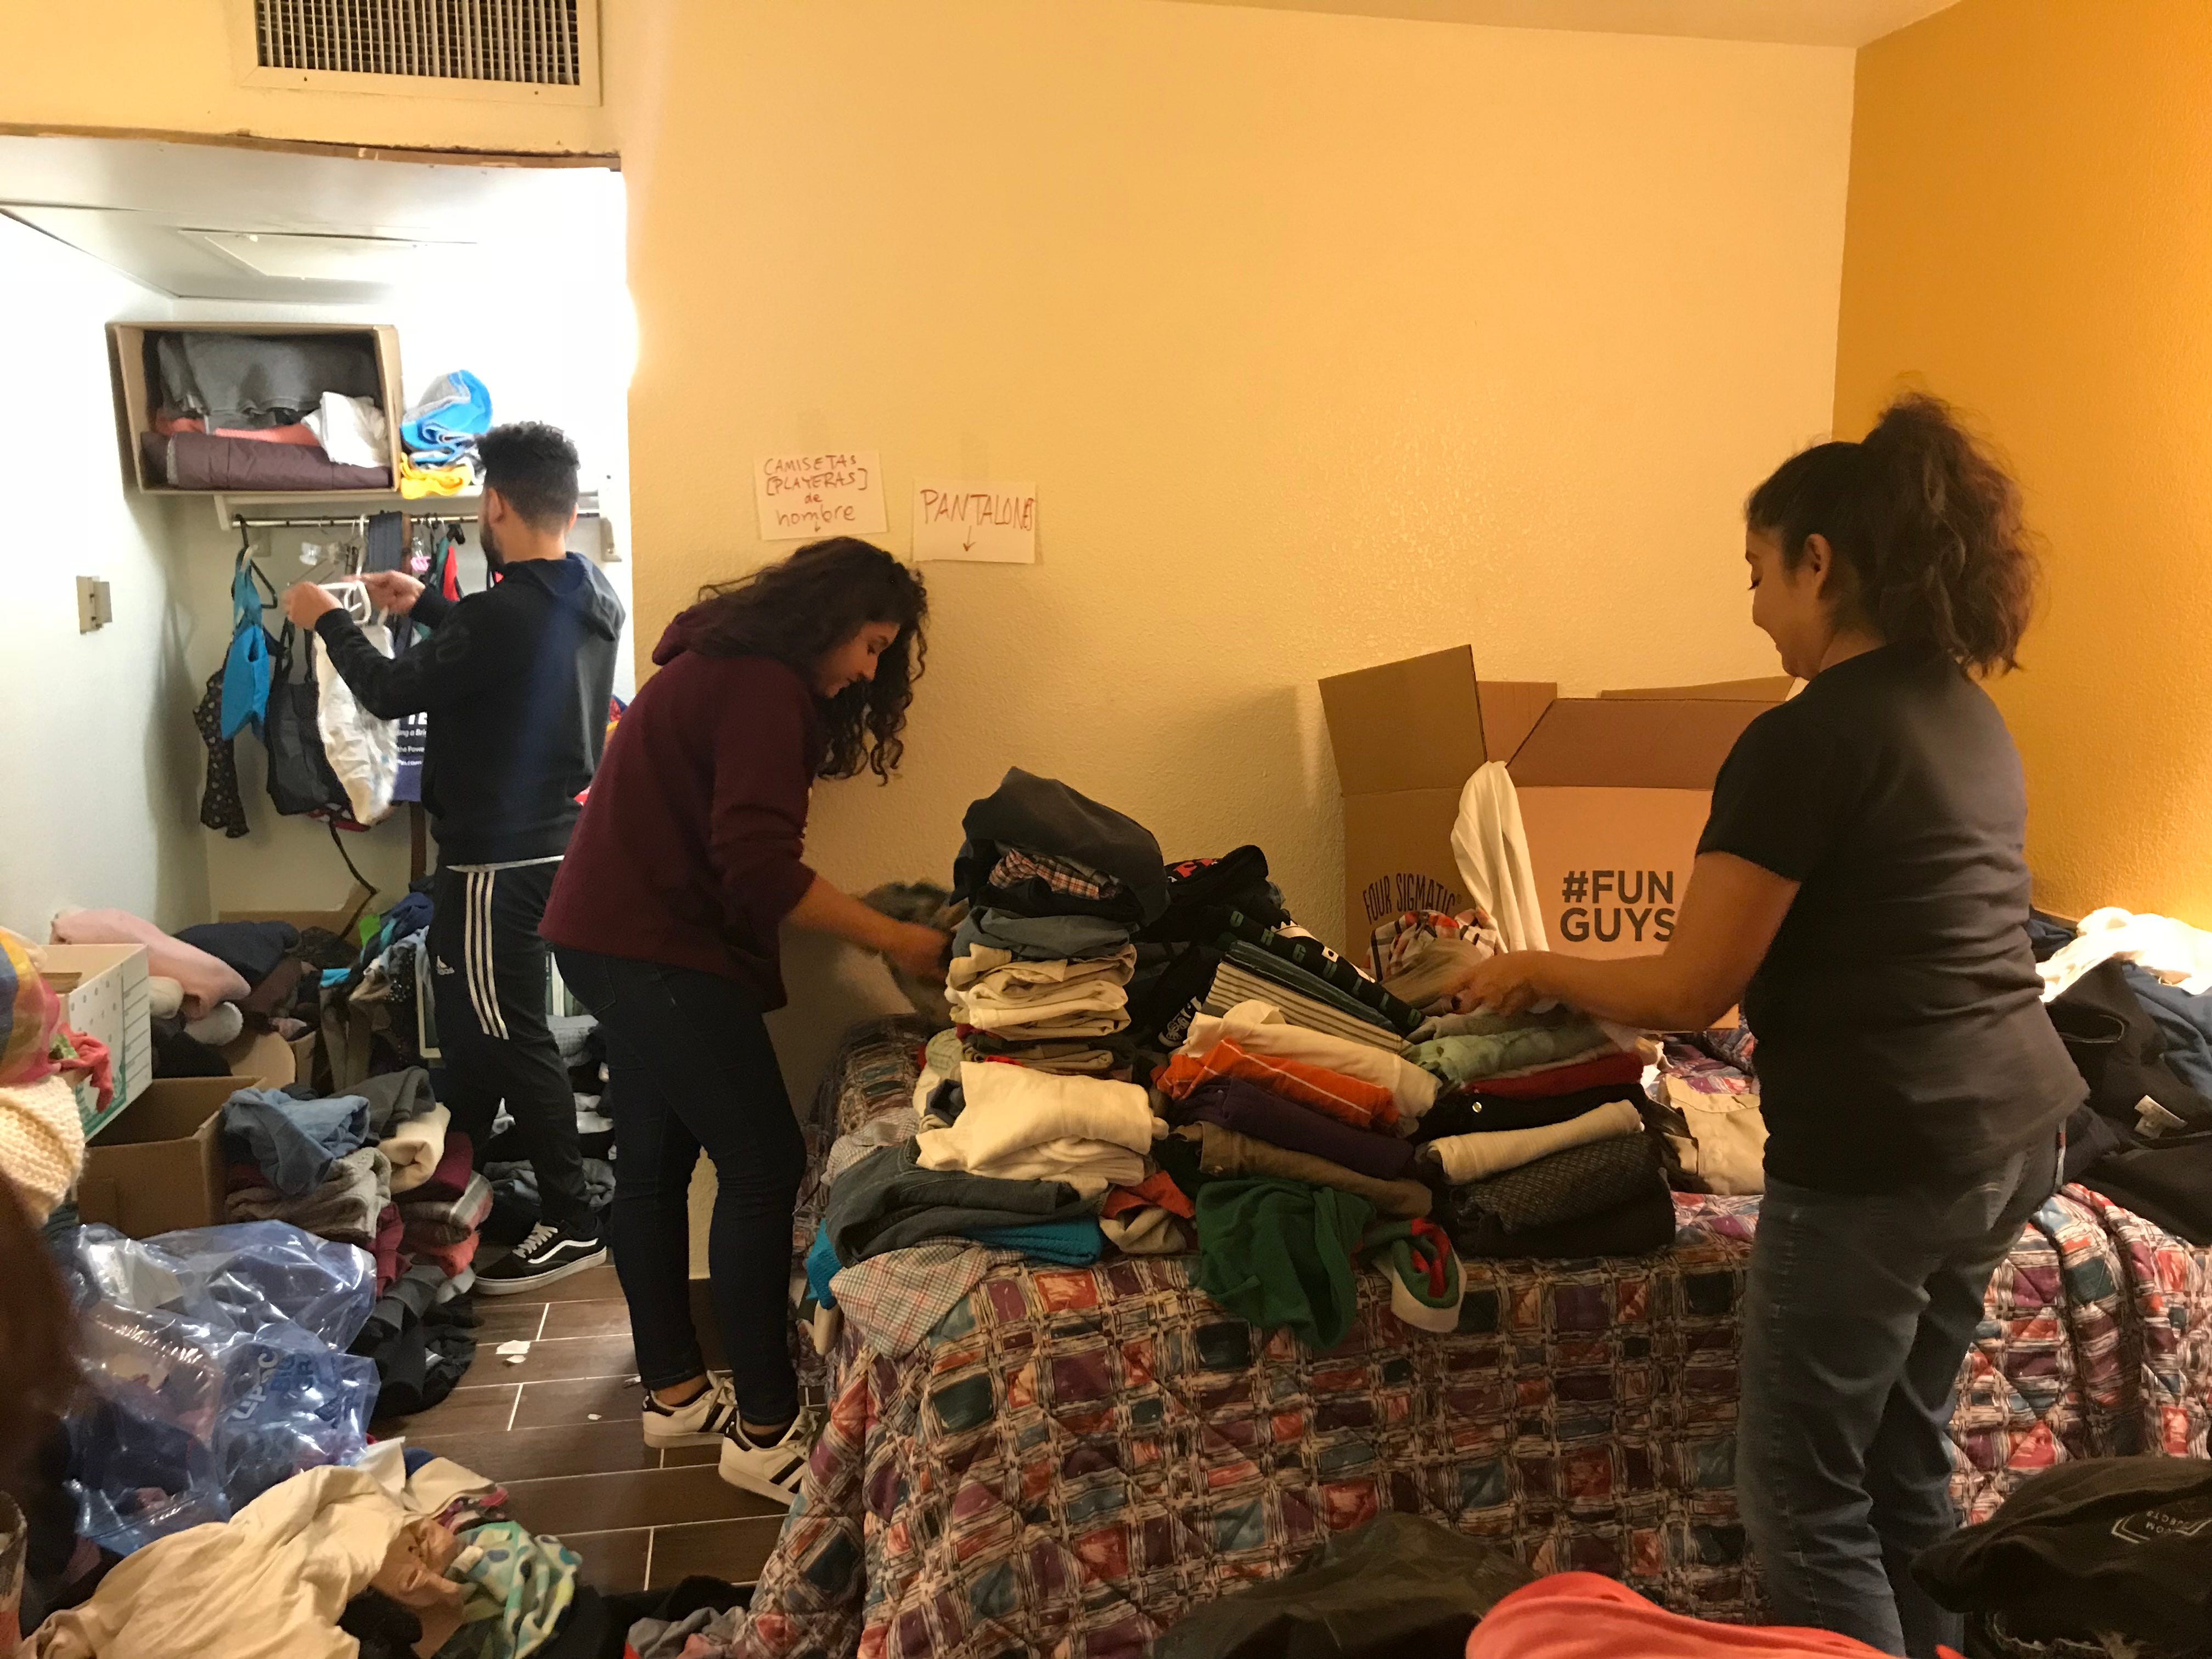 Raquel Vargas Lugo and her two children, Sylvia, 16, and Mark, 21, help sort donated clothes inside the room of a motel housing dozens of migrant families in Tucson.